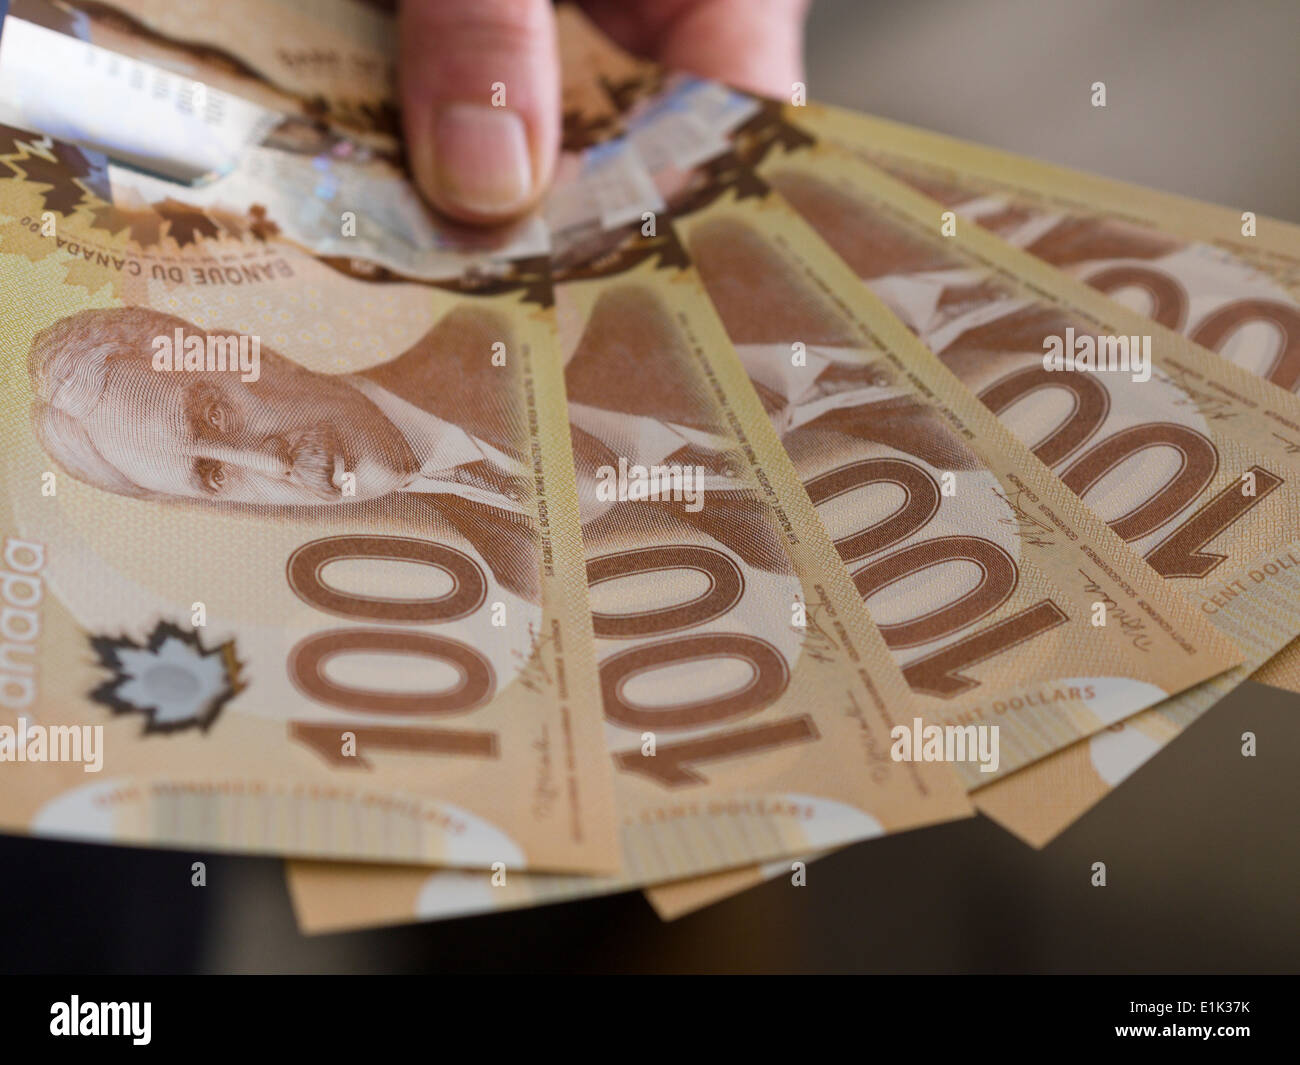 Show Me the Money: 5 Canadian Hundred dollar bills. Five Canadian hundred dollar bills spread out like a hand of cards. - Stock Image